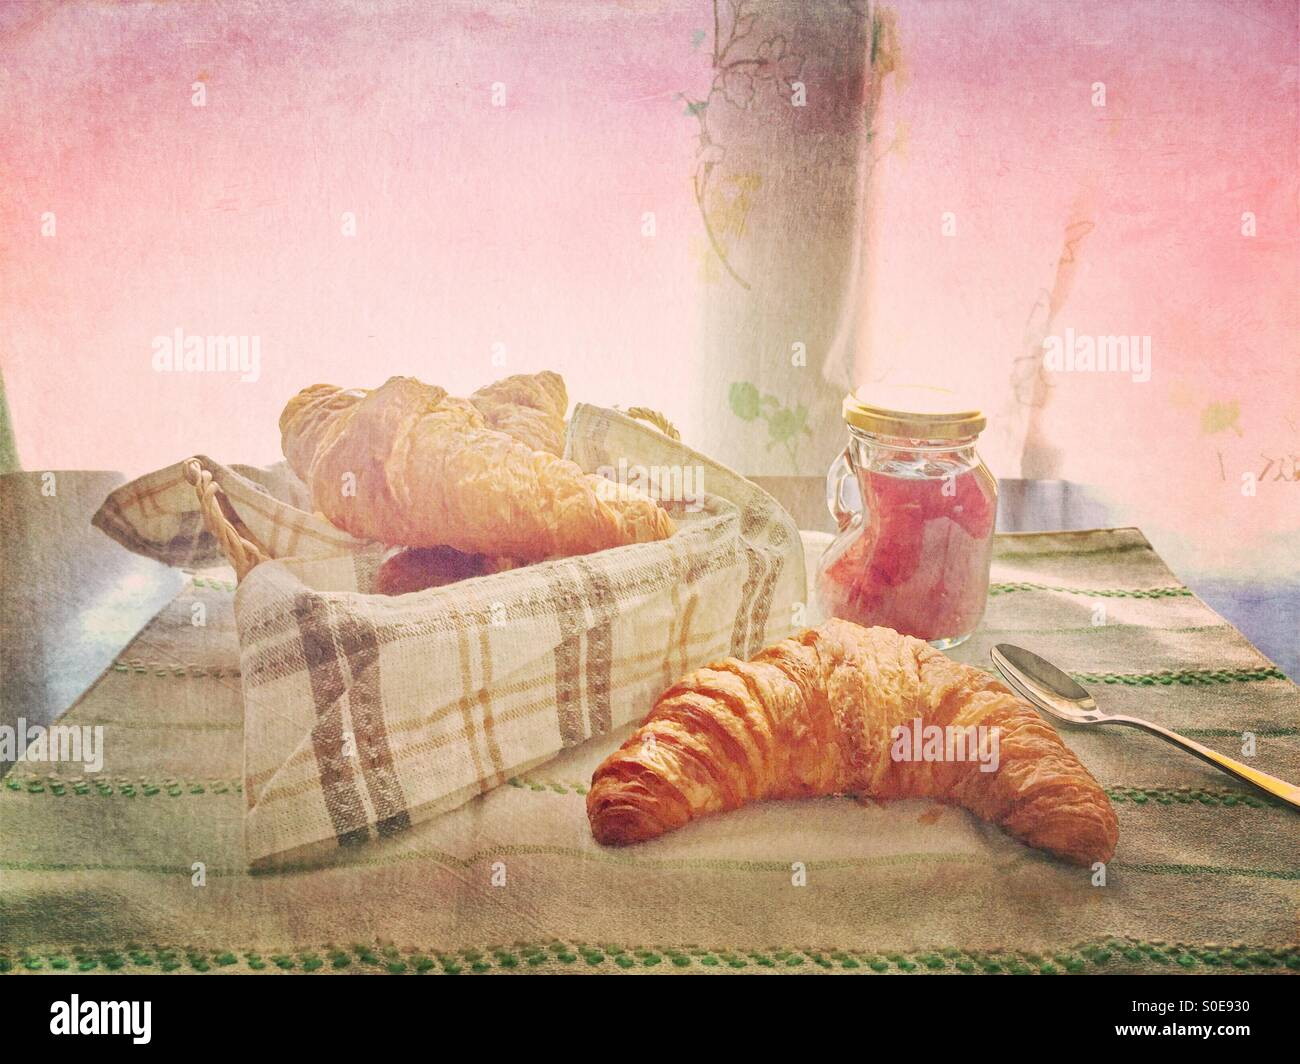 Small jar of homemade strawberry jam, bread basket with croissant, striped cloth and silver spoon. Vintage texture - Stock Image